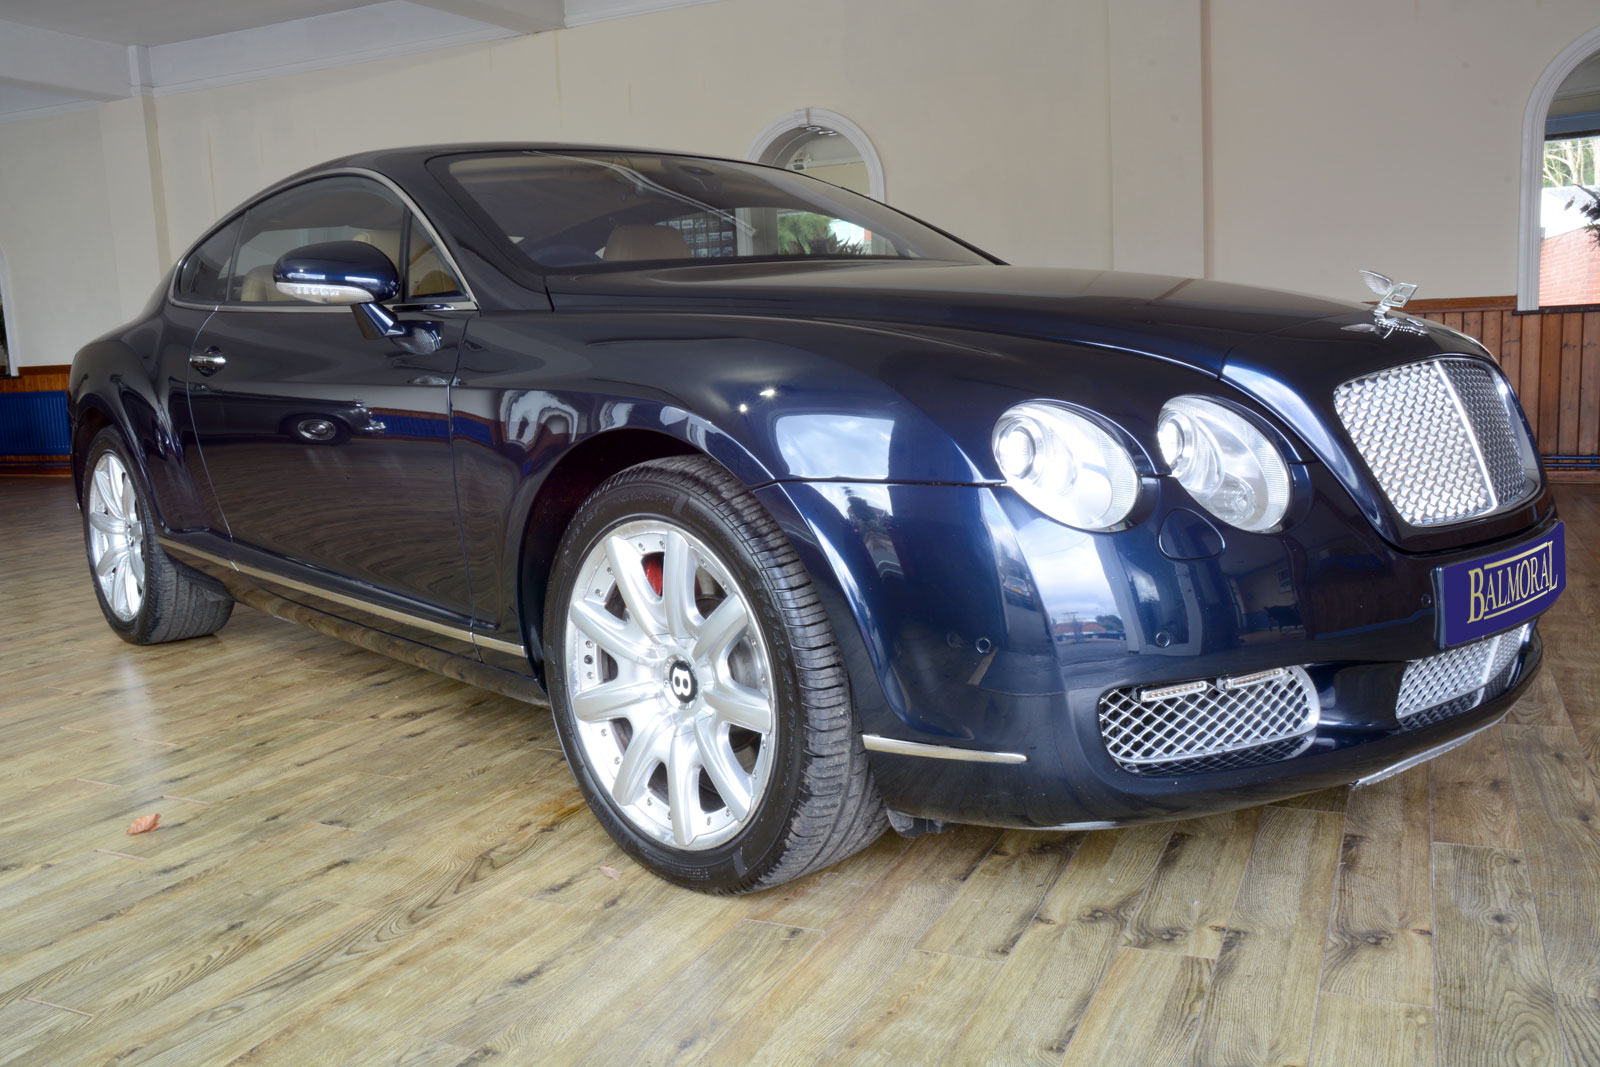 2005 MY Bentley Continental GT